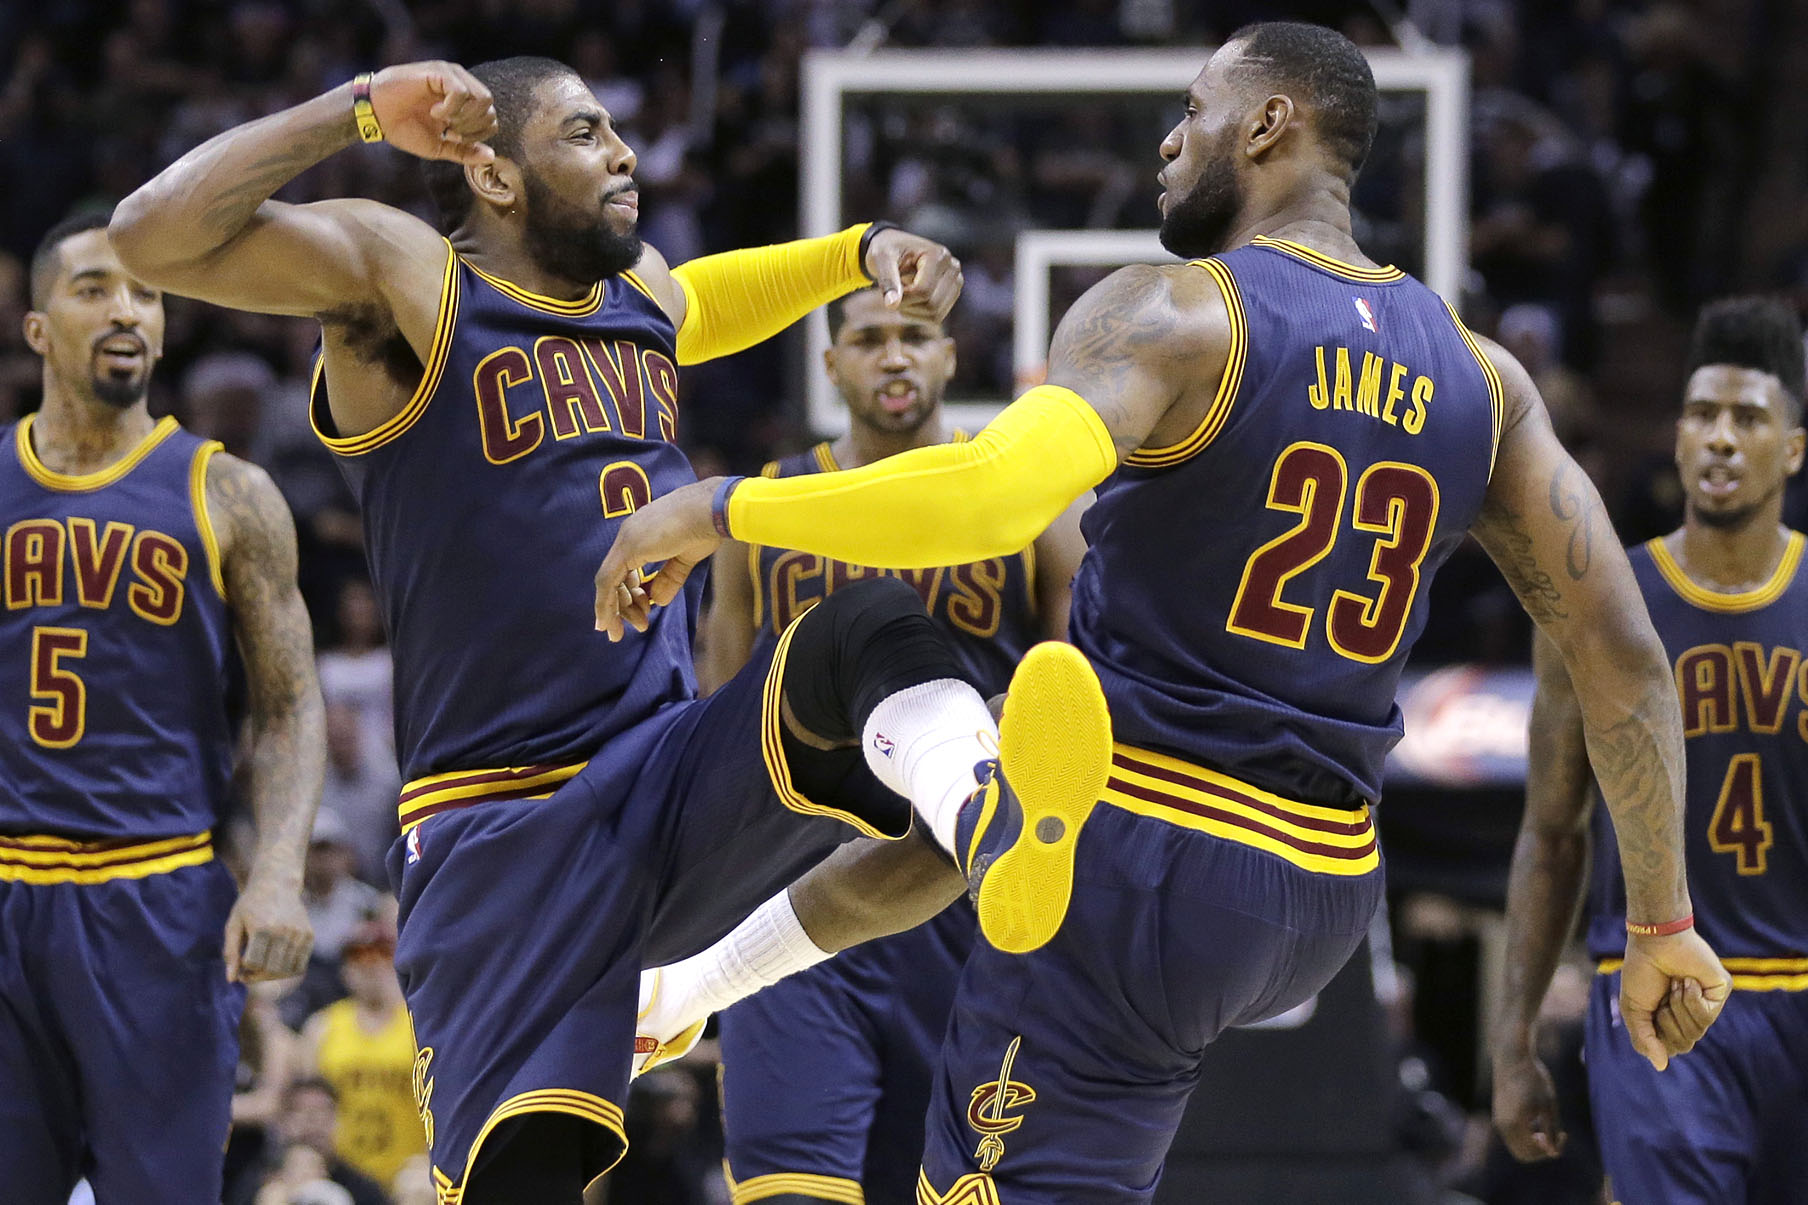 Cleveland Cavaliers' Kyrie Irving (2) and LeBron James (23) celebrate during overtime of an NBA basketball game against the San Antonio Spurs, Thursday, March 12, 2015, in San Antonio. Cleveland won 128-125. Irving scored 57 points. (AP Photo/Eric Gay)